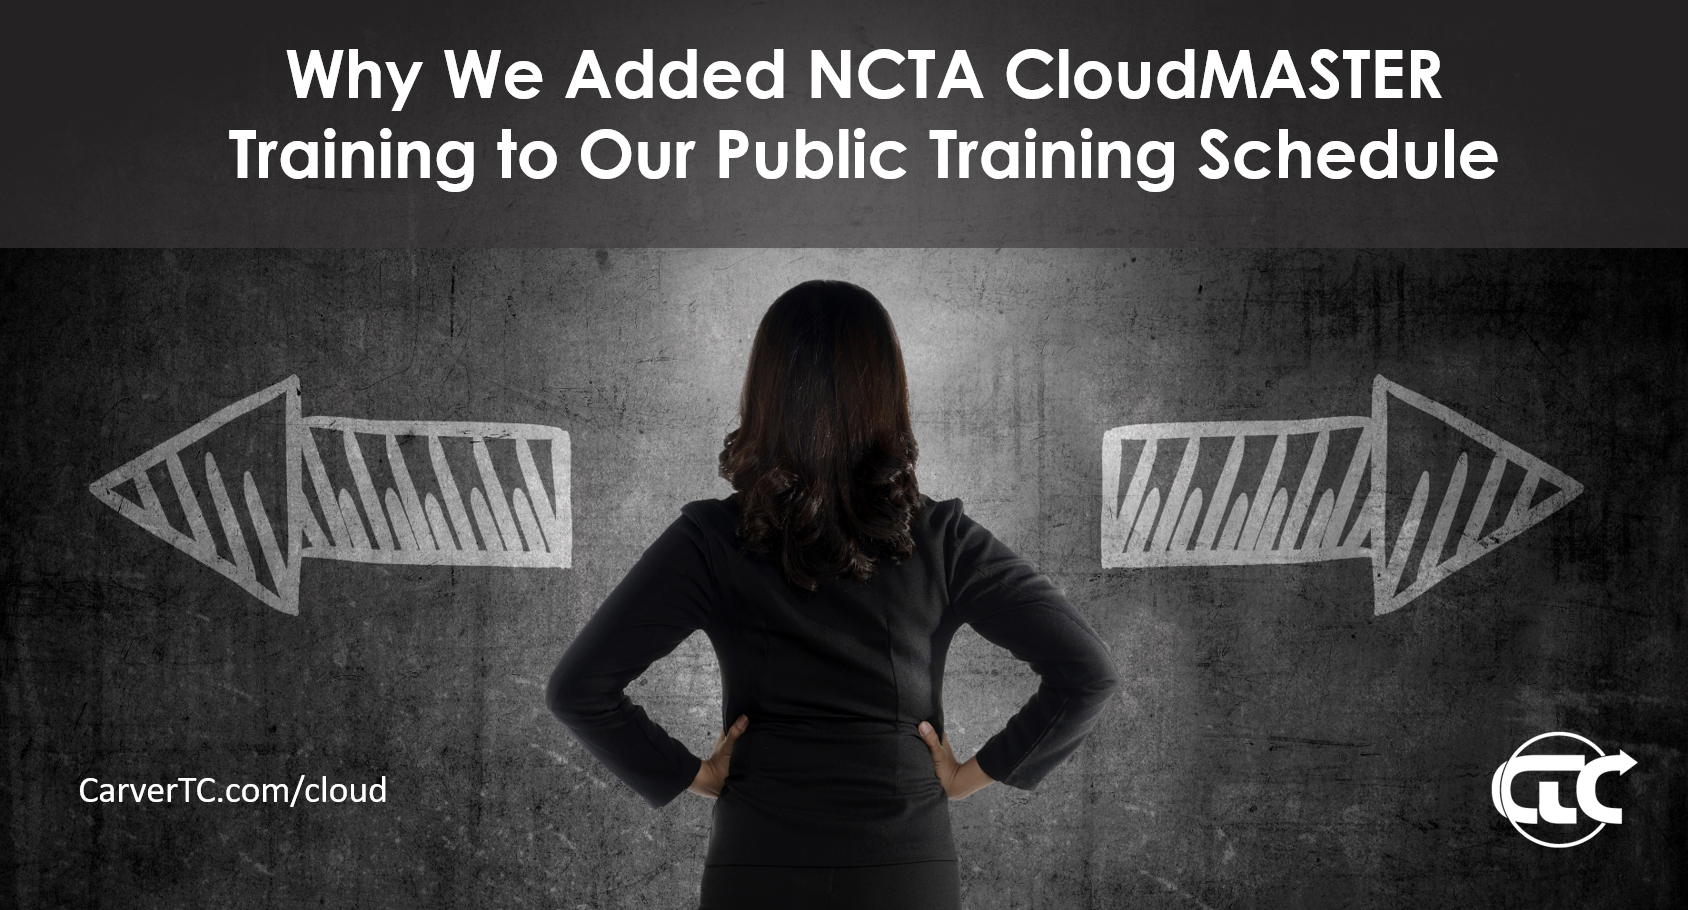 Why_We_Added_NCTA_CloudMASTER_Training_to_Our_Public_Training_Schedule-WIDE.png